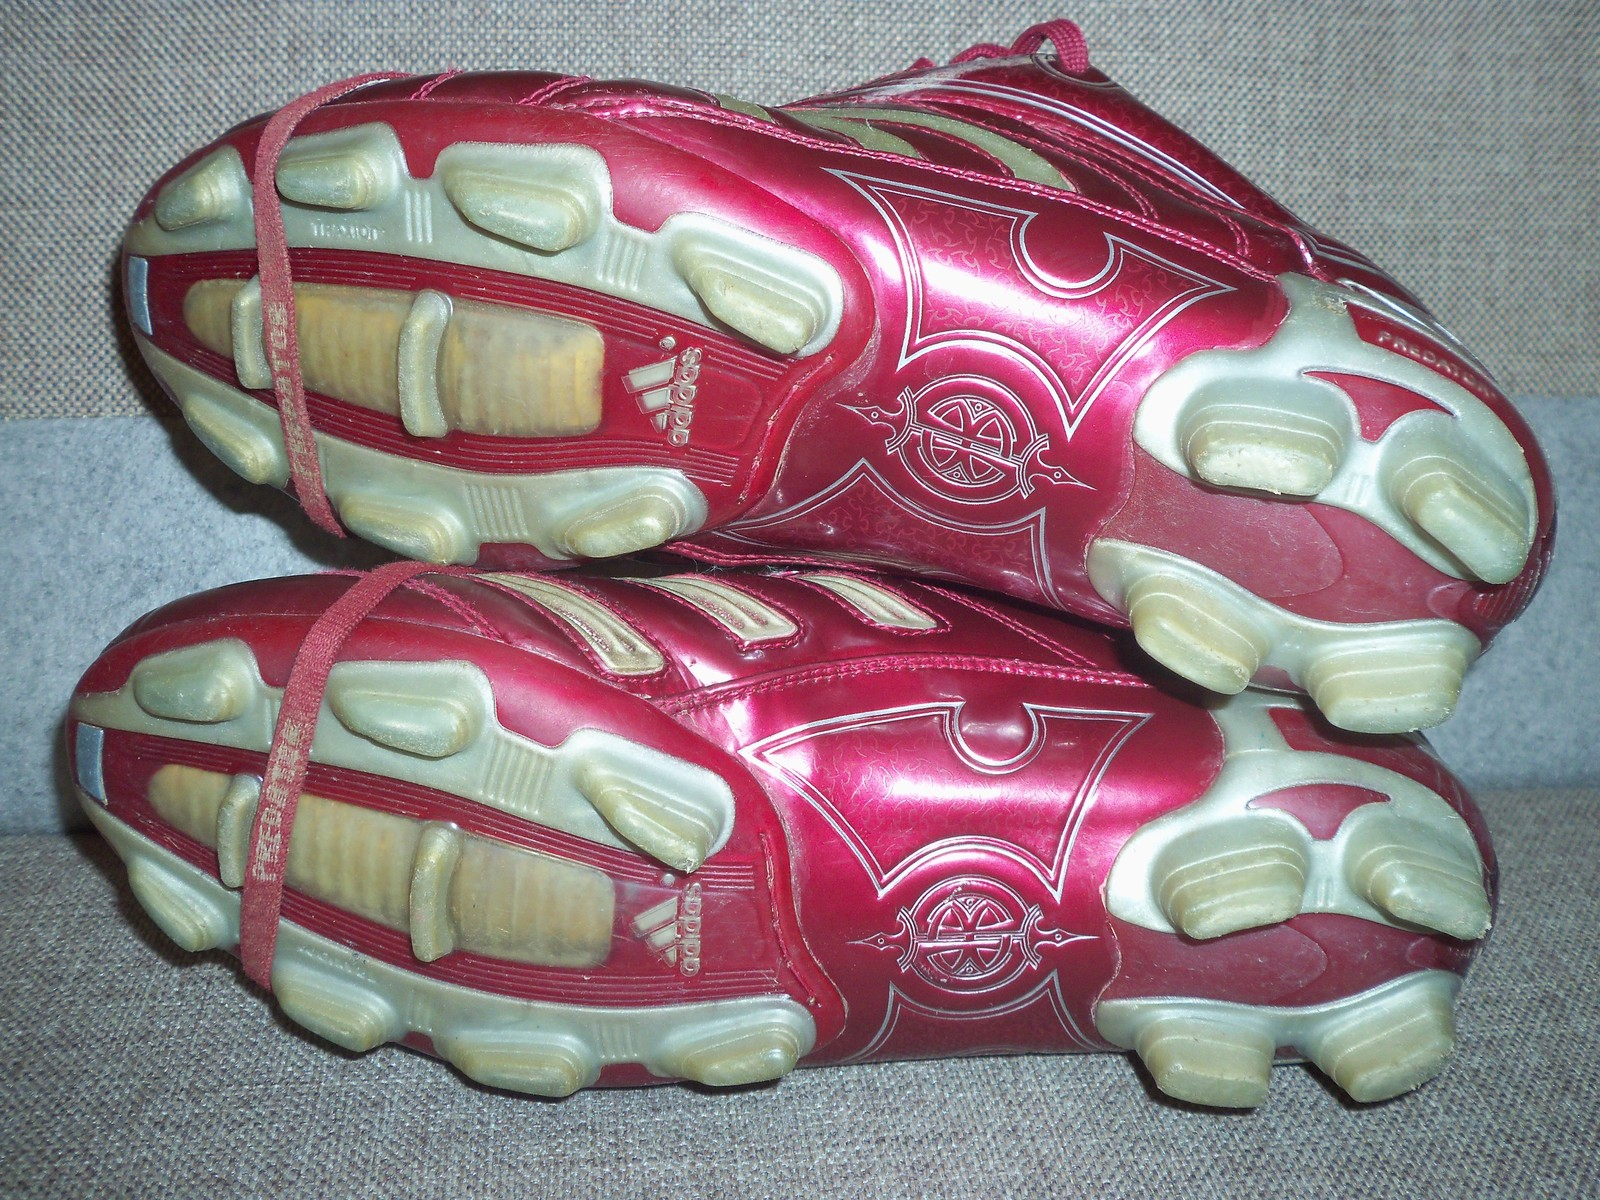 ade522f76789 ADIDAS PREDATOR ABSOLUTE TRX FG UK 7 US 7.5 FOOTBALL BOOTS SOCCER CLEATS